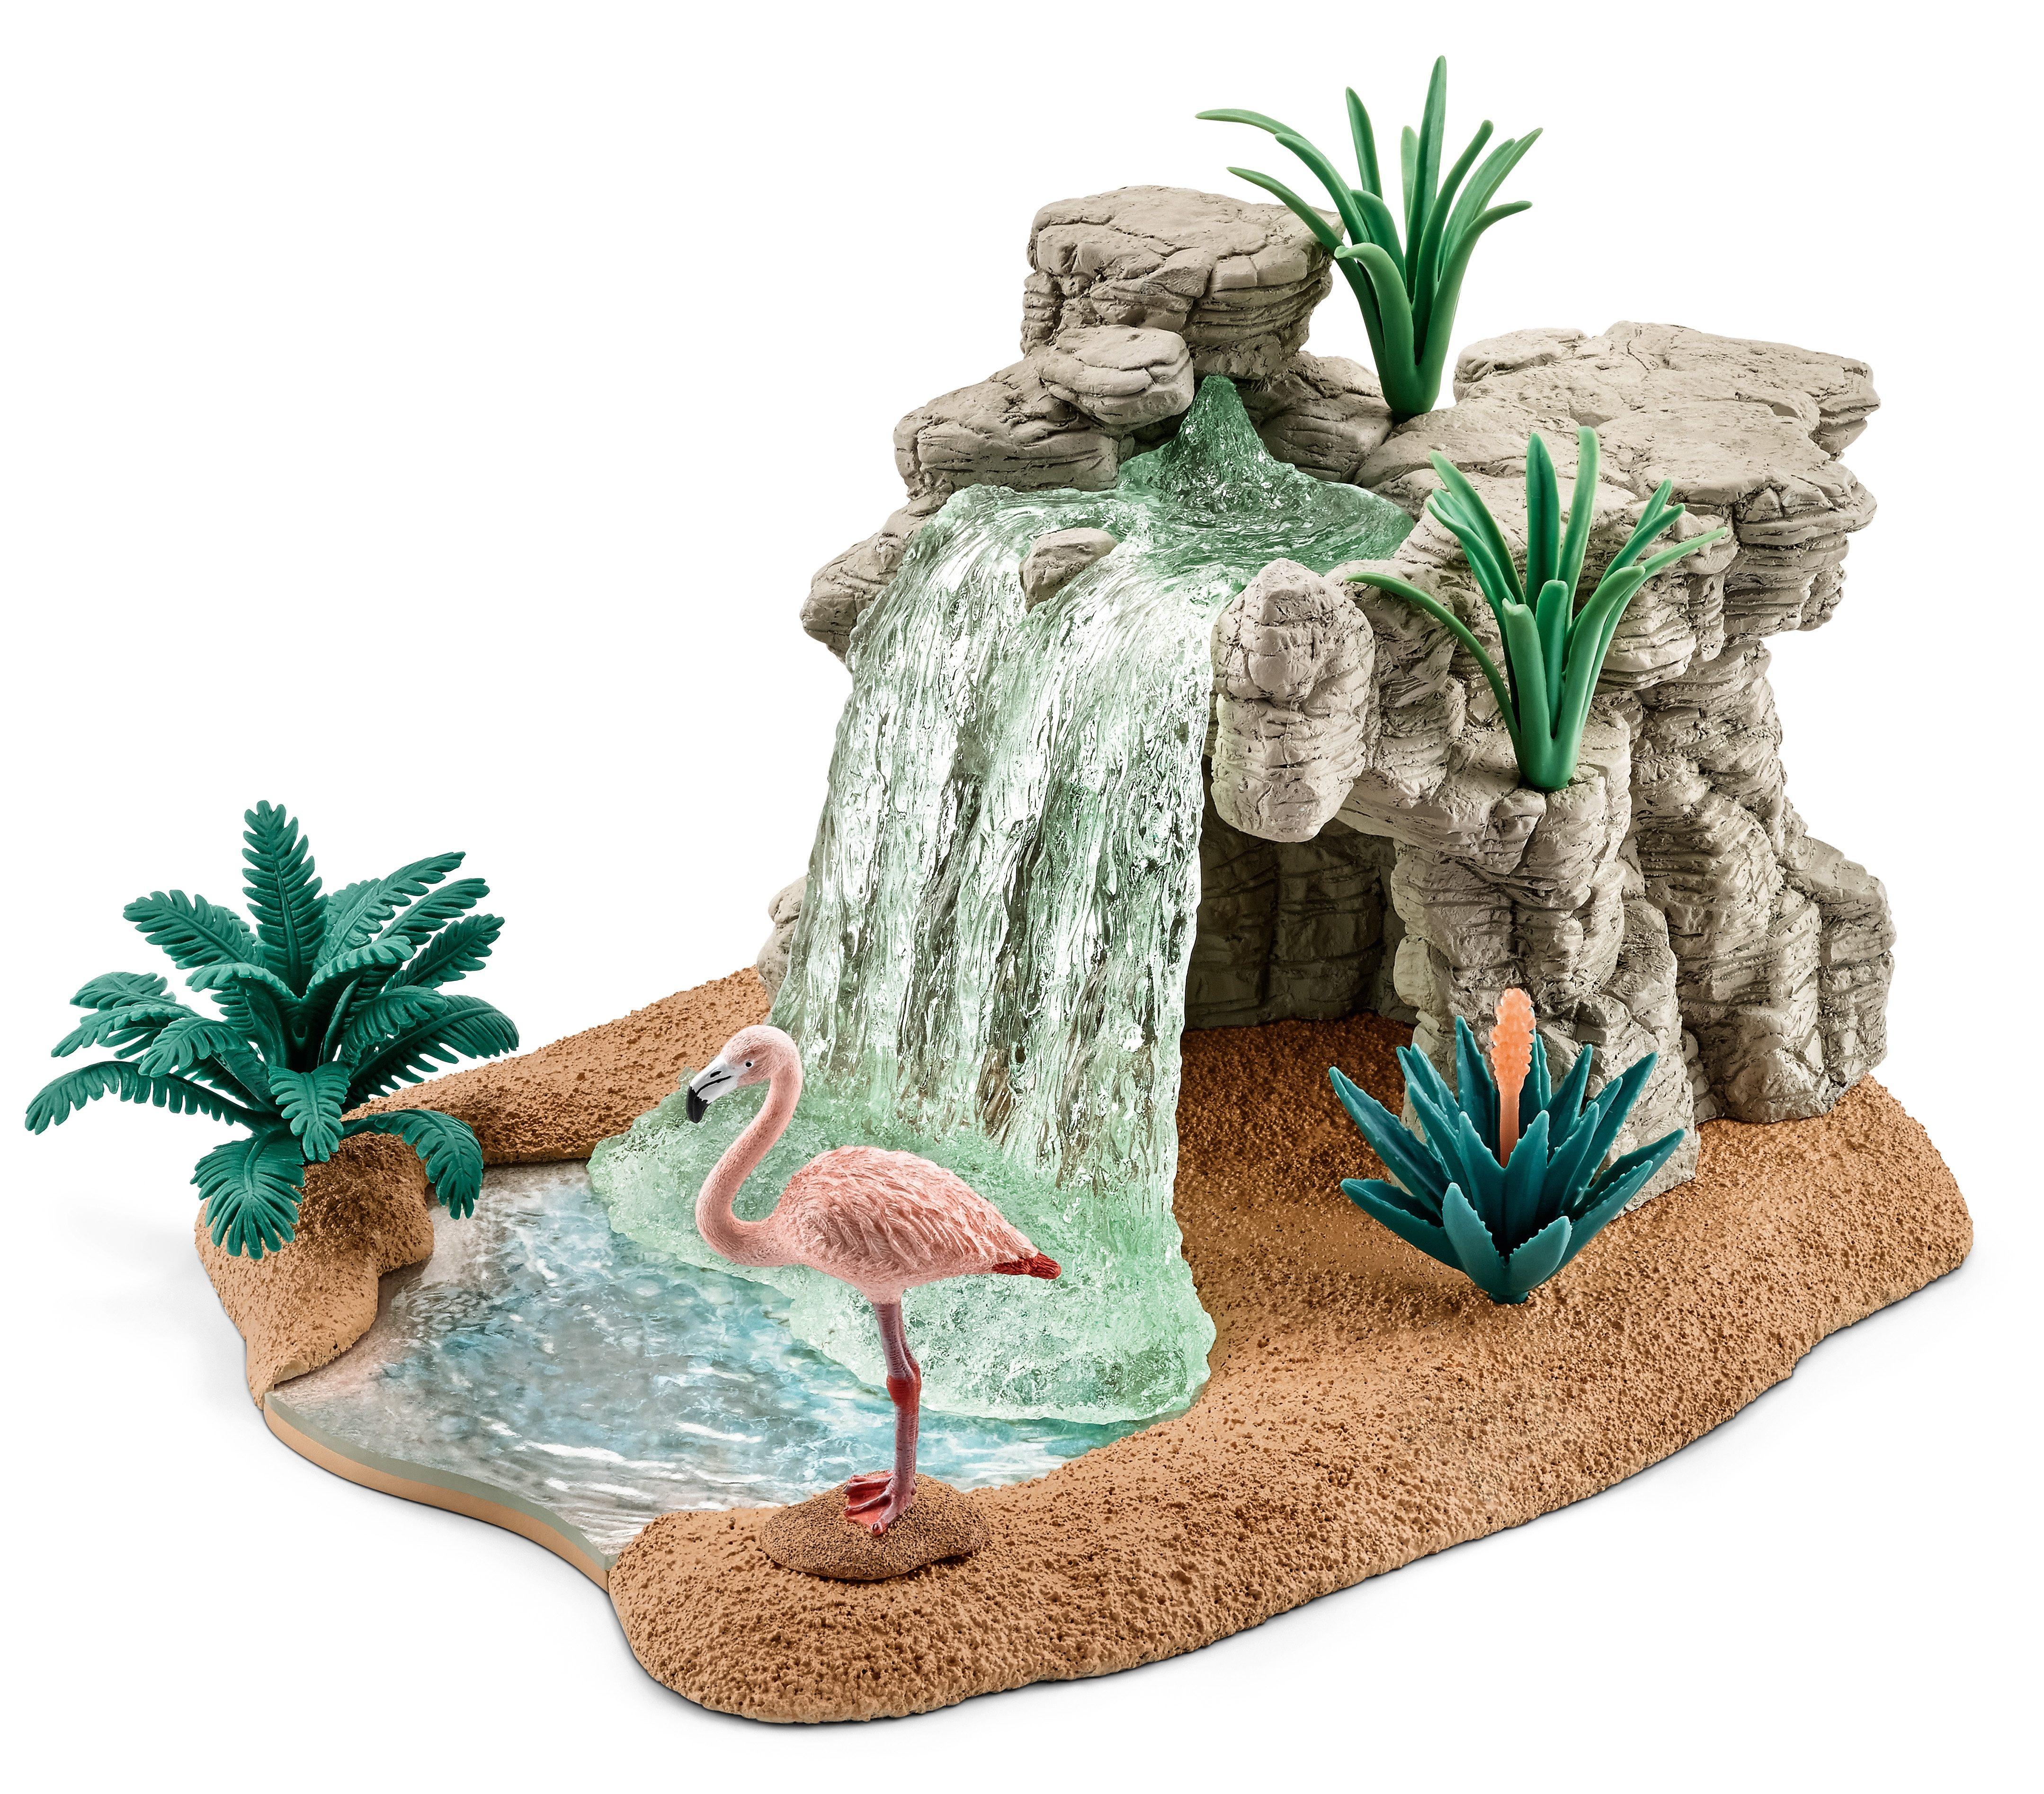 Schleich® Spielfigur, »World of Nature Wild Life - Wasserfall«